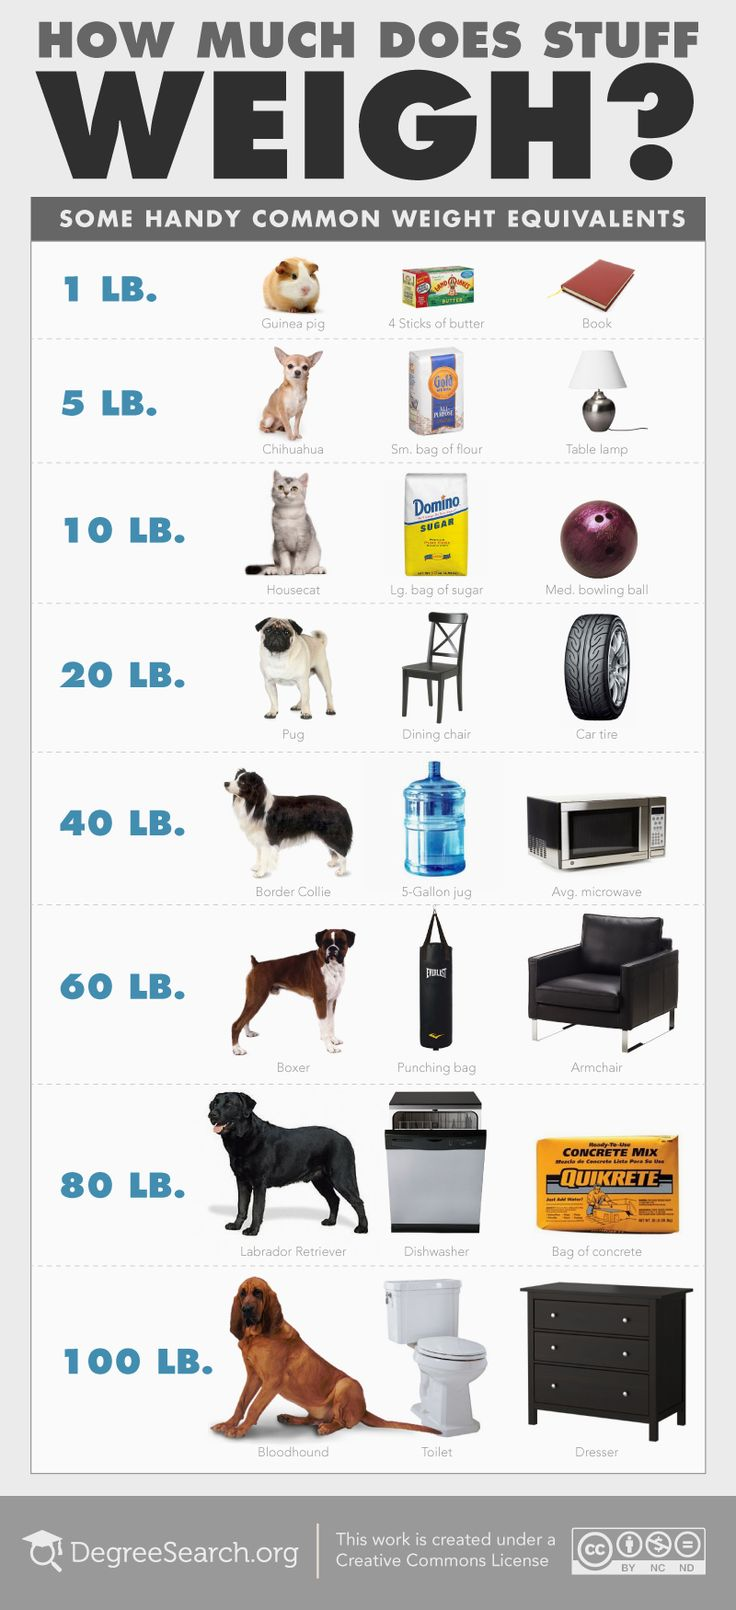 How Much Does A Big Bag Of Dog Food Weigh